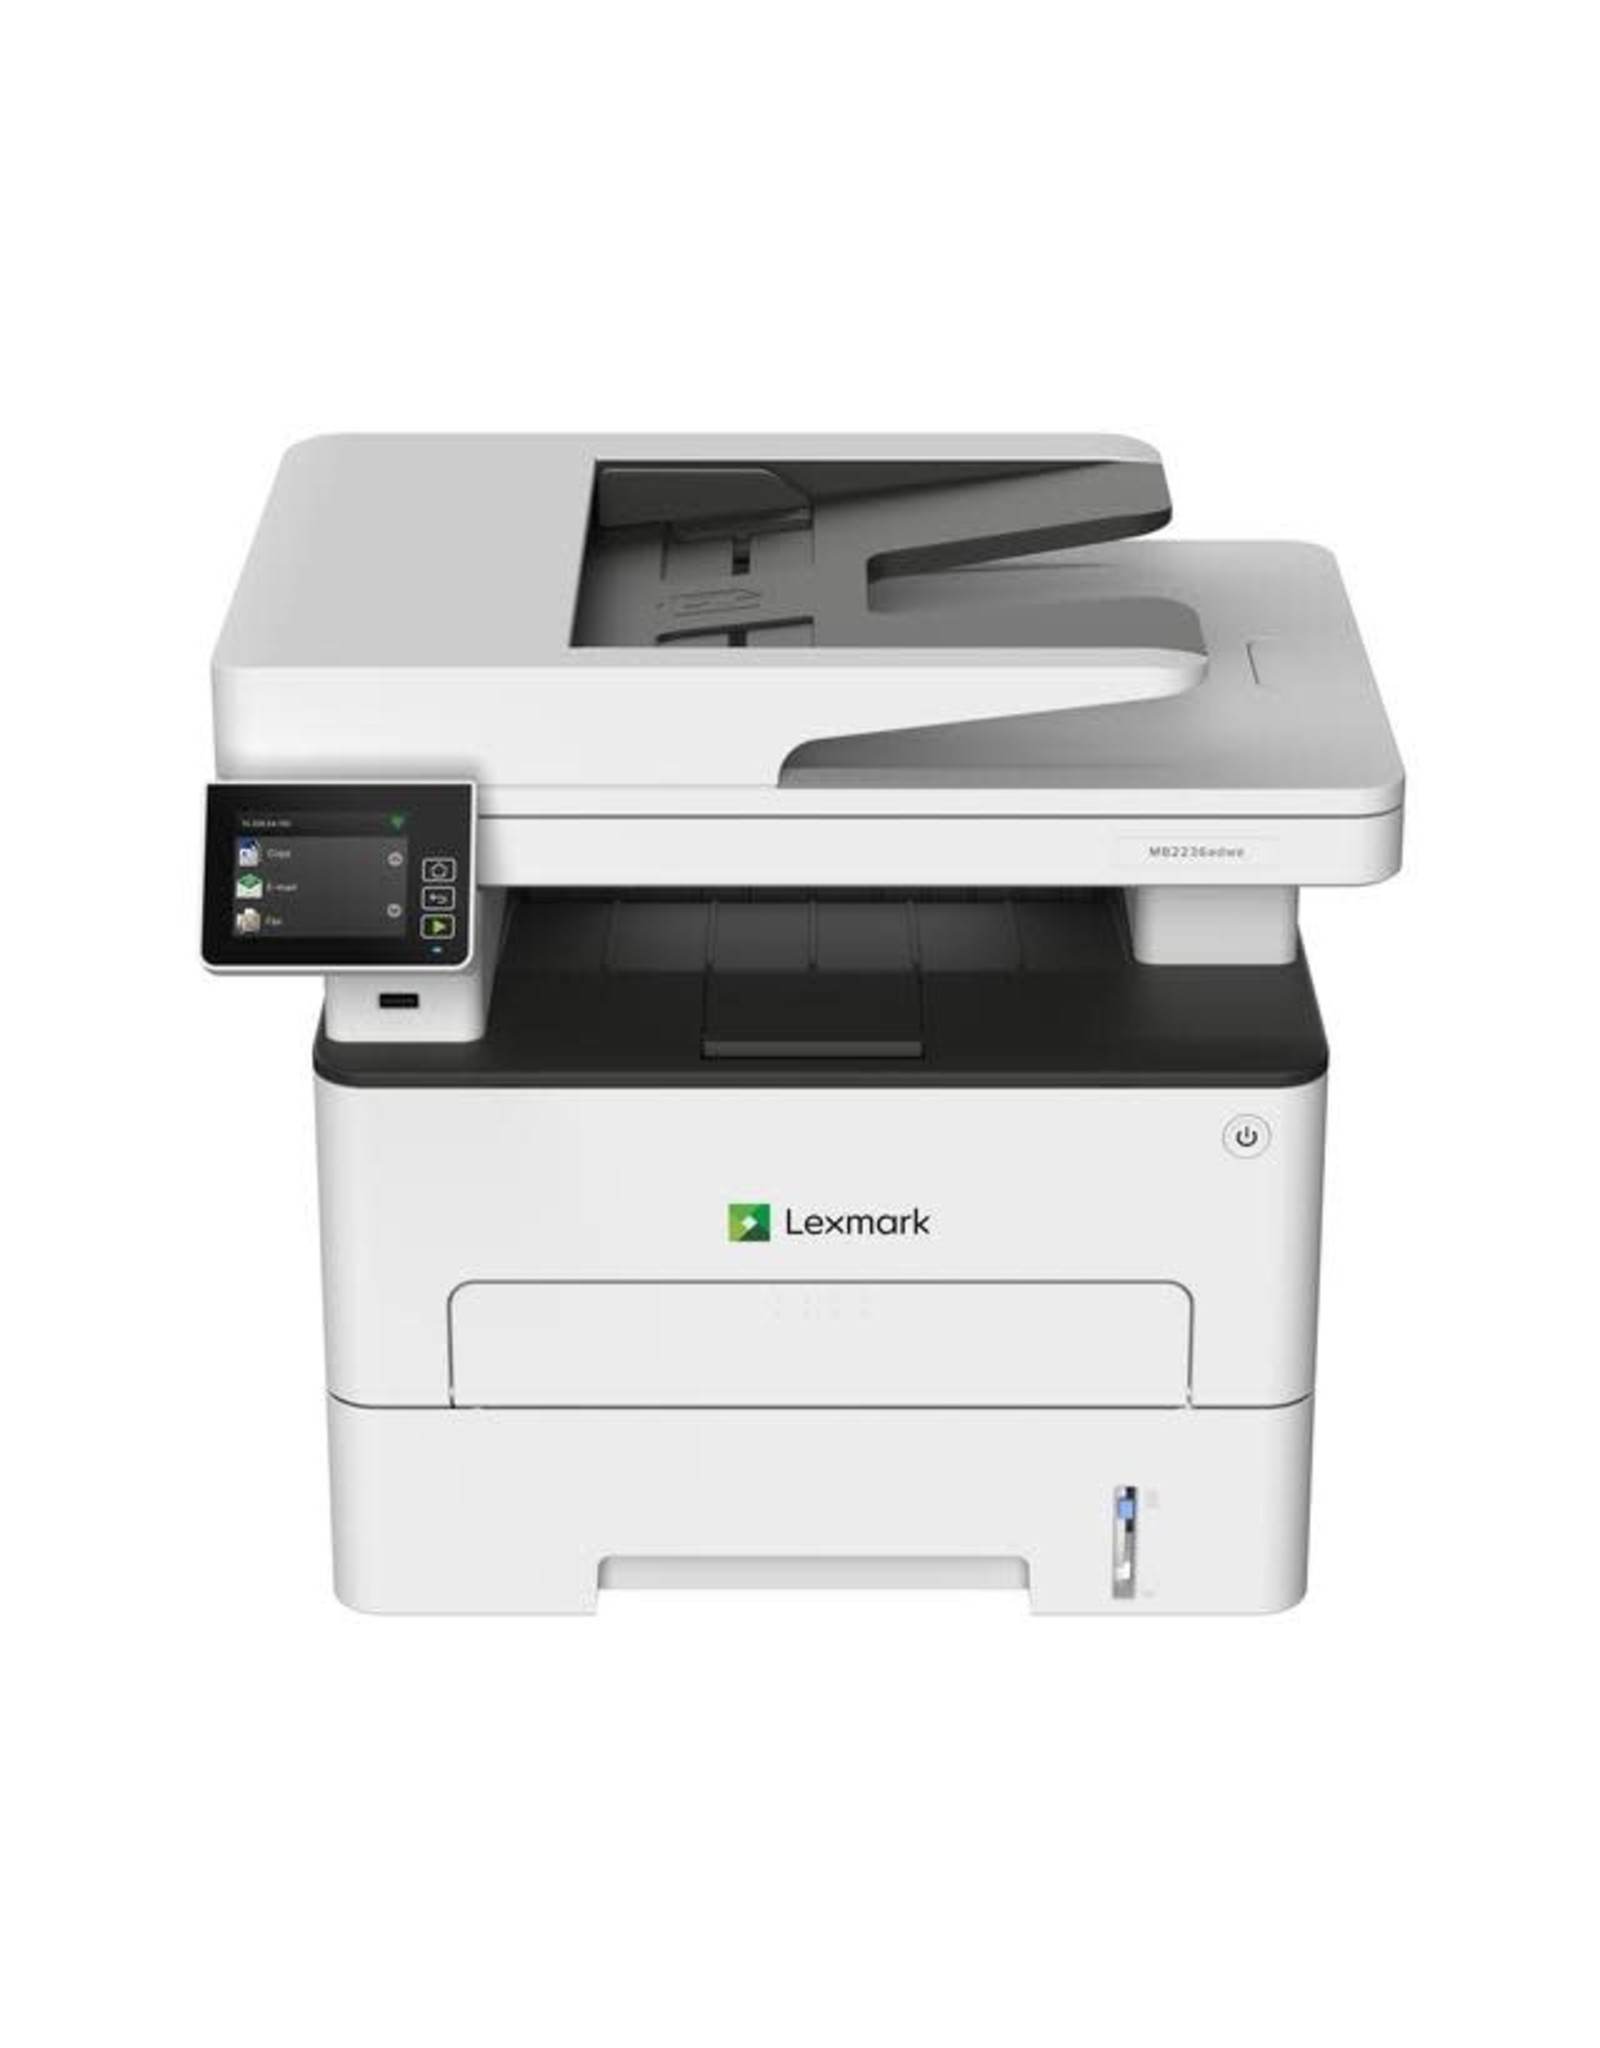 Lexmark Lexmark All-in-One B&W Laser Printer